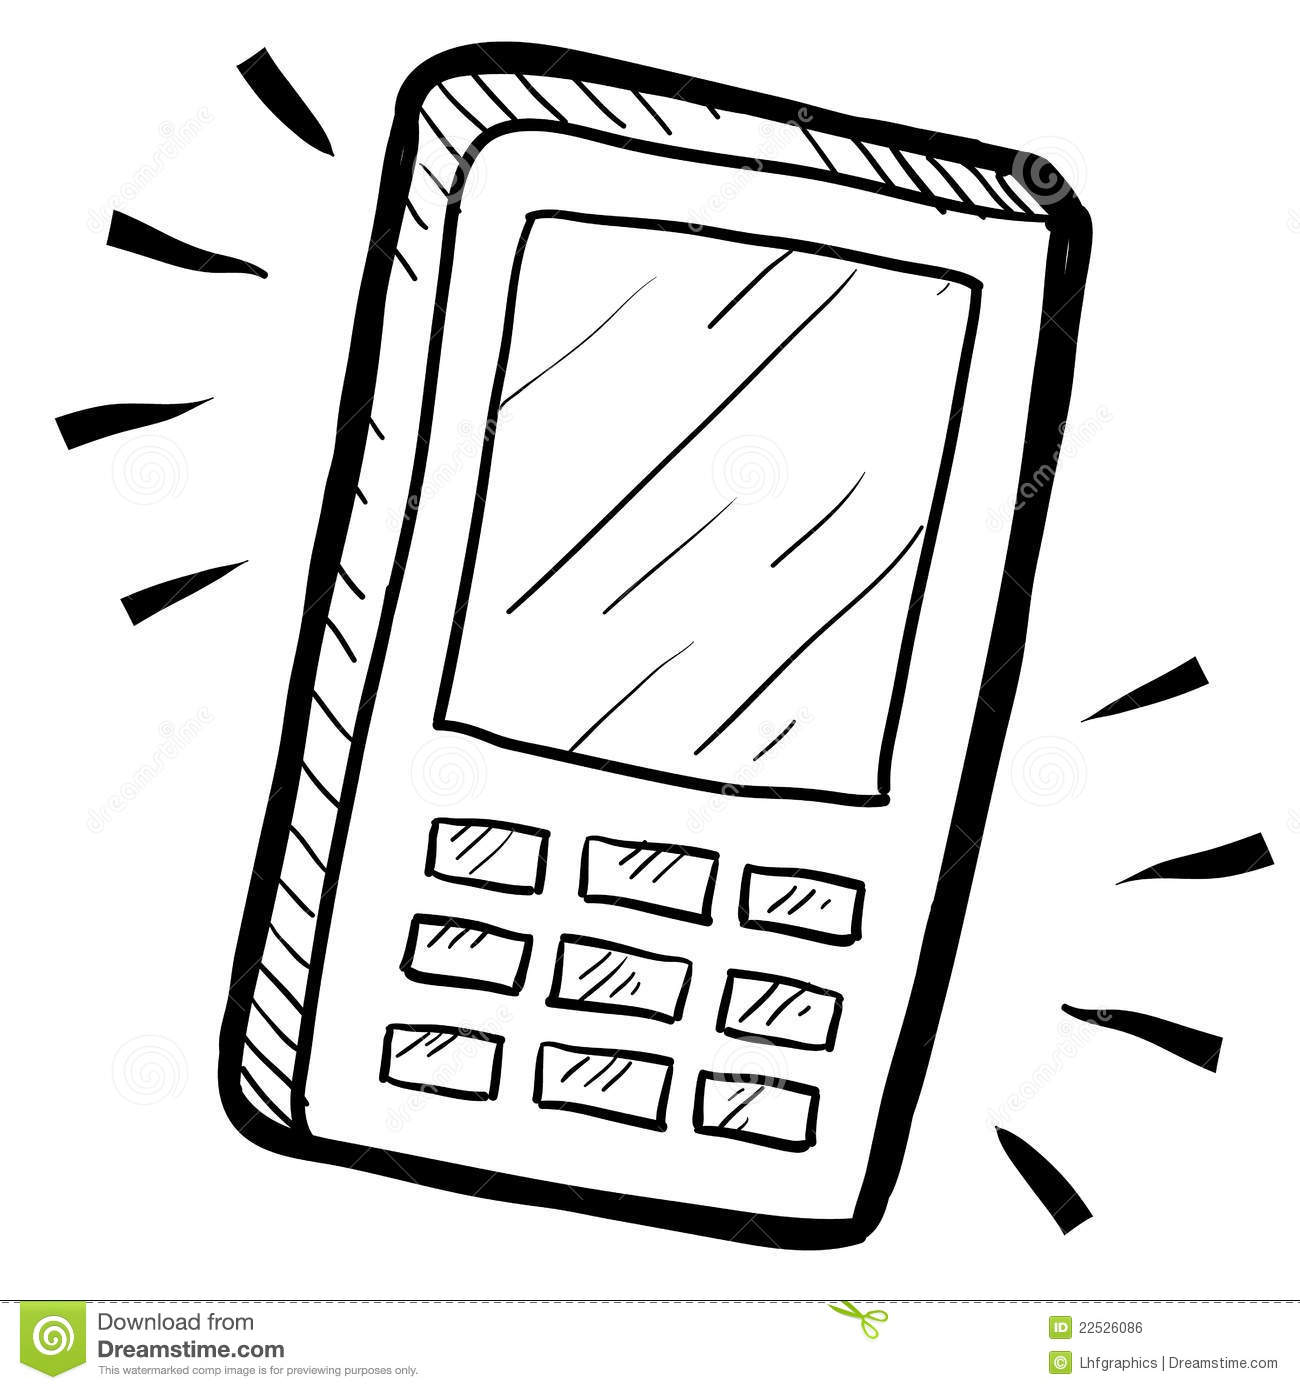 mobile device or smartphone sketch royalty free stock image